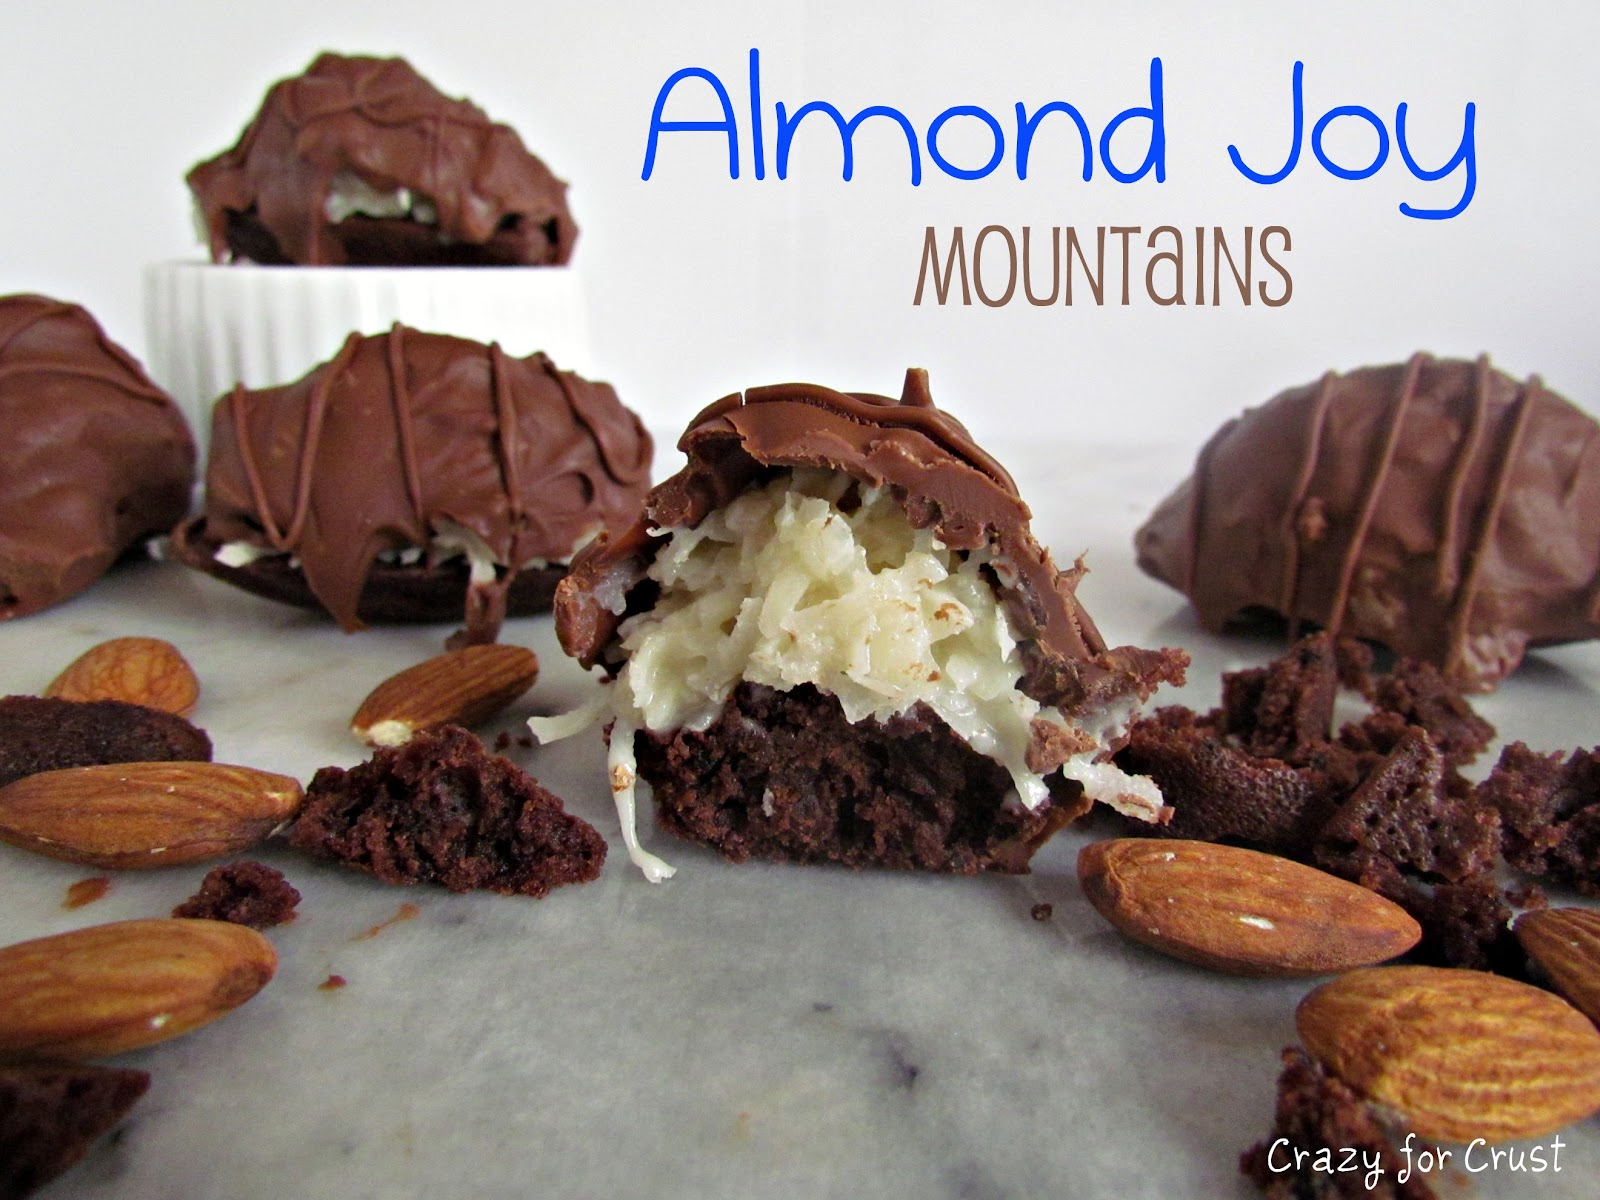 Recipe: Almond Joy mountains